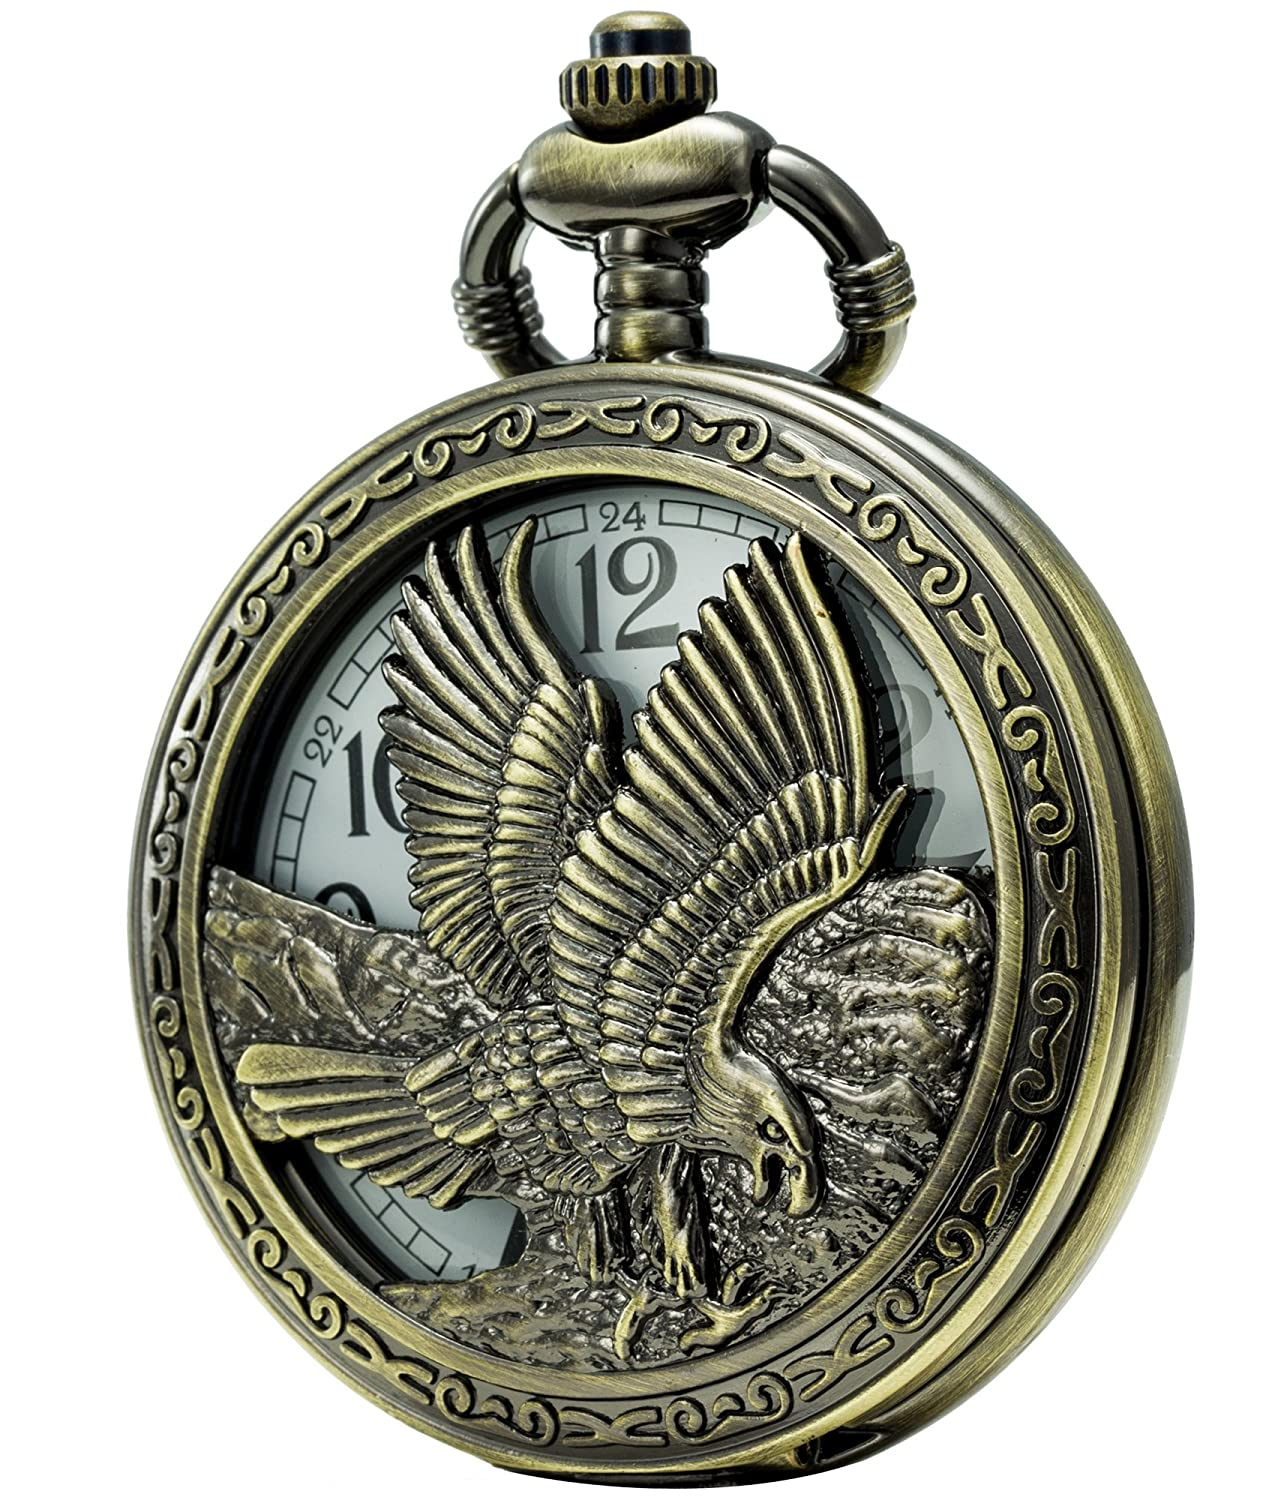 SEWOR Retro Quartz Pocket Watch White Dial Bronze Case with Two Chains Leather Metal